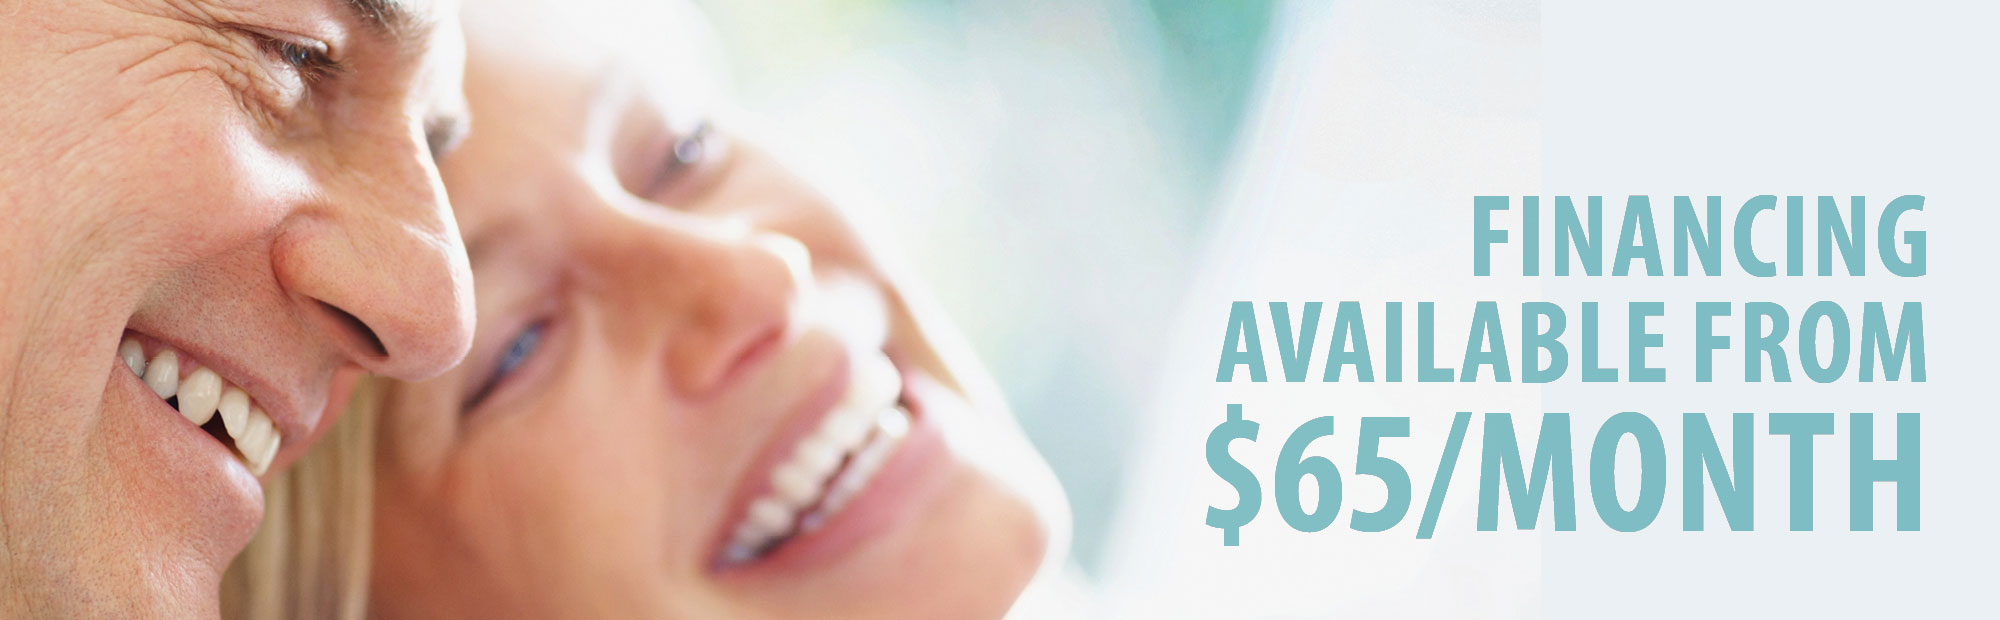 Dental Implants Financing Available